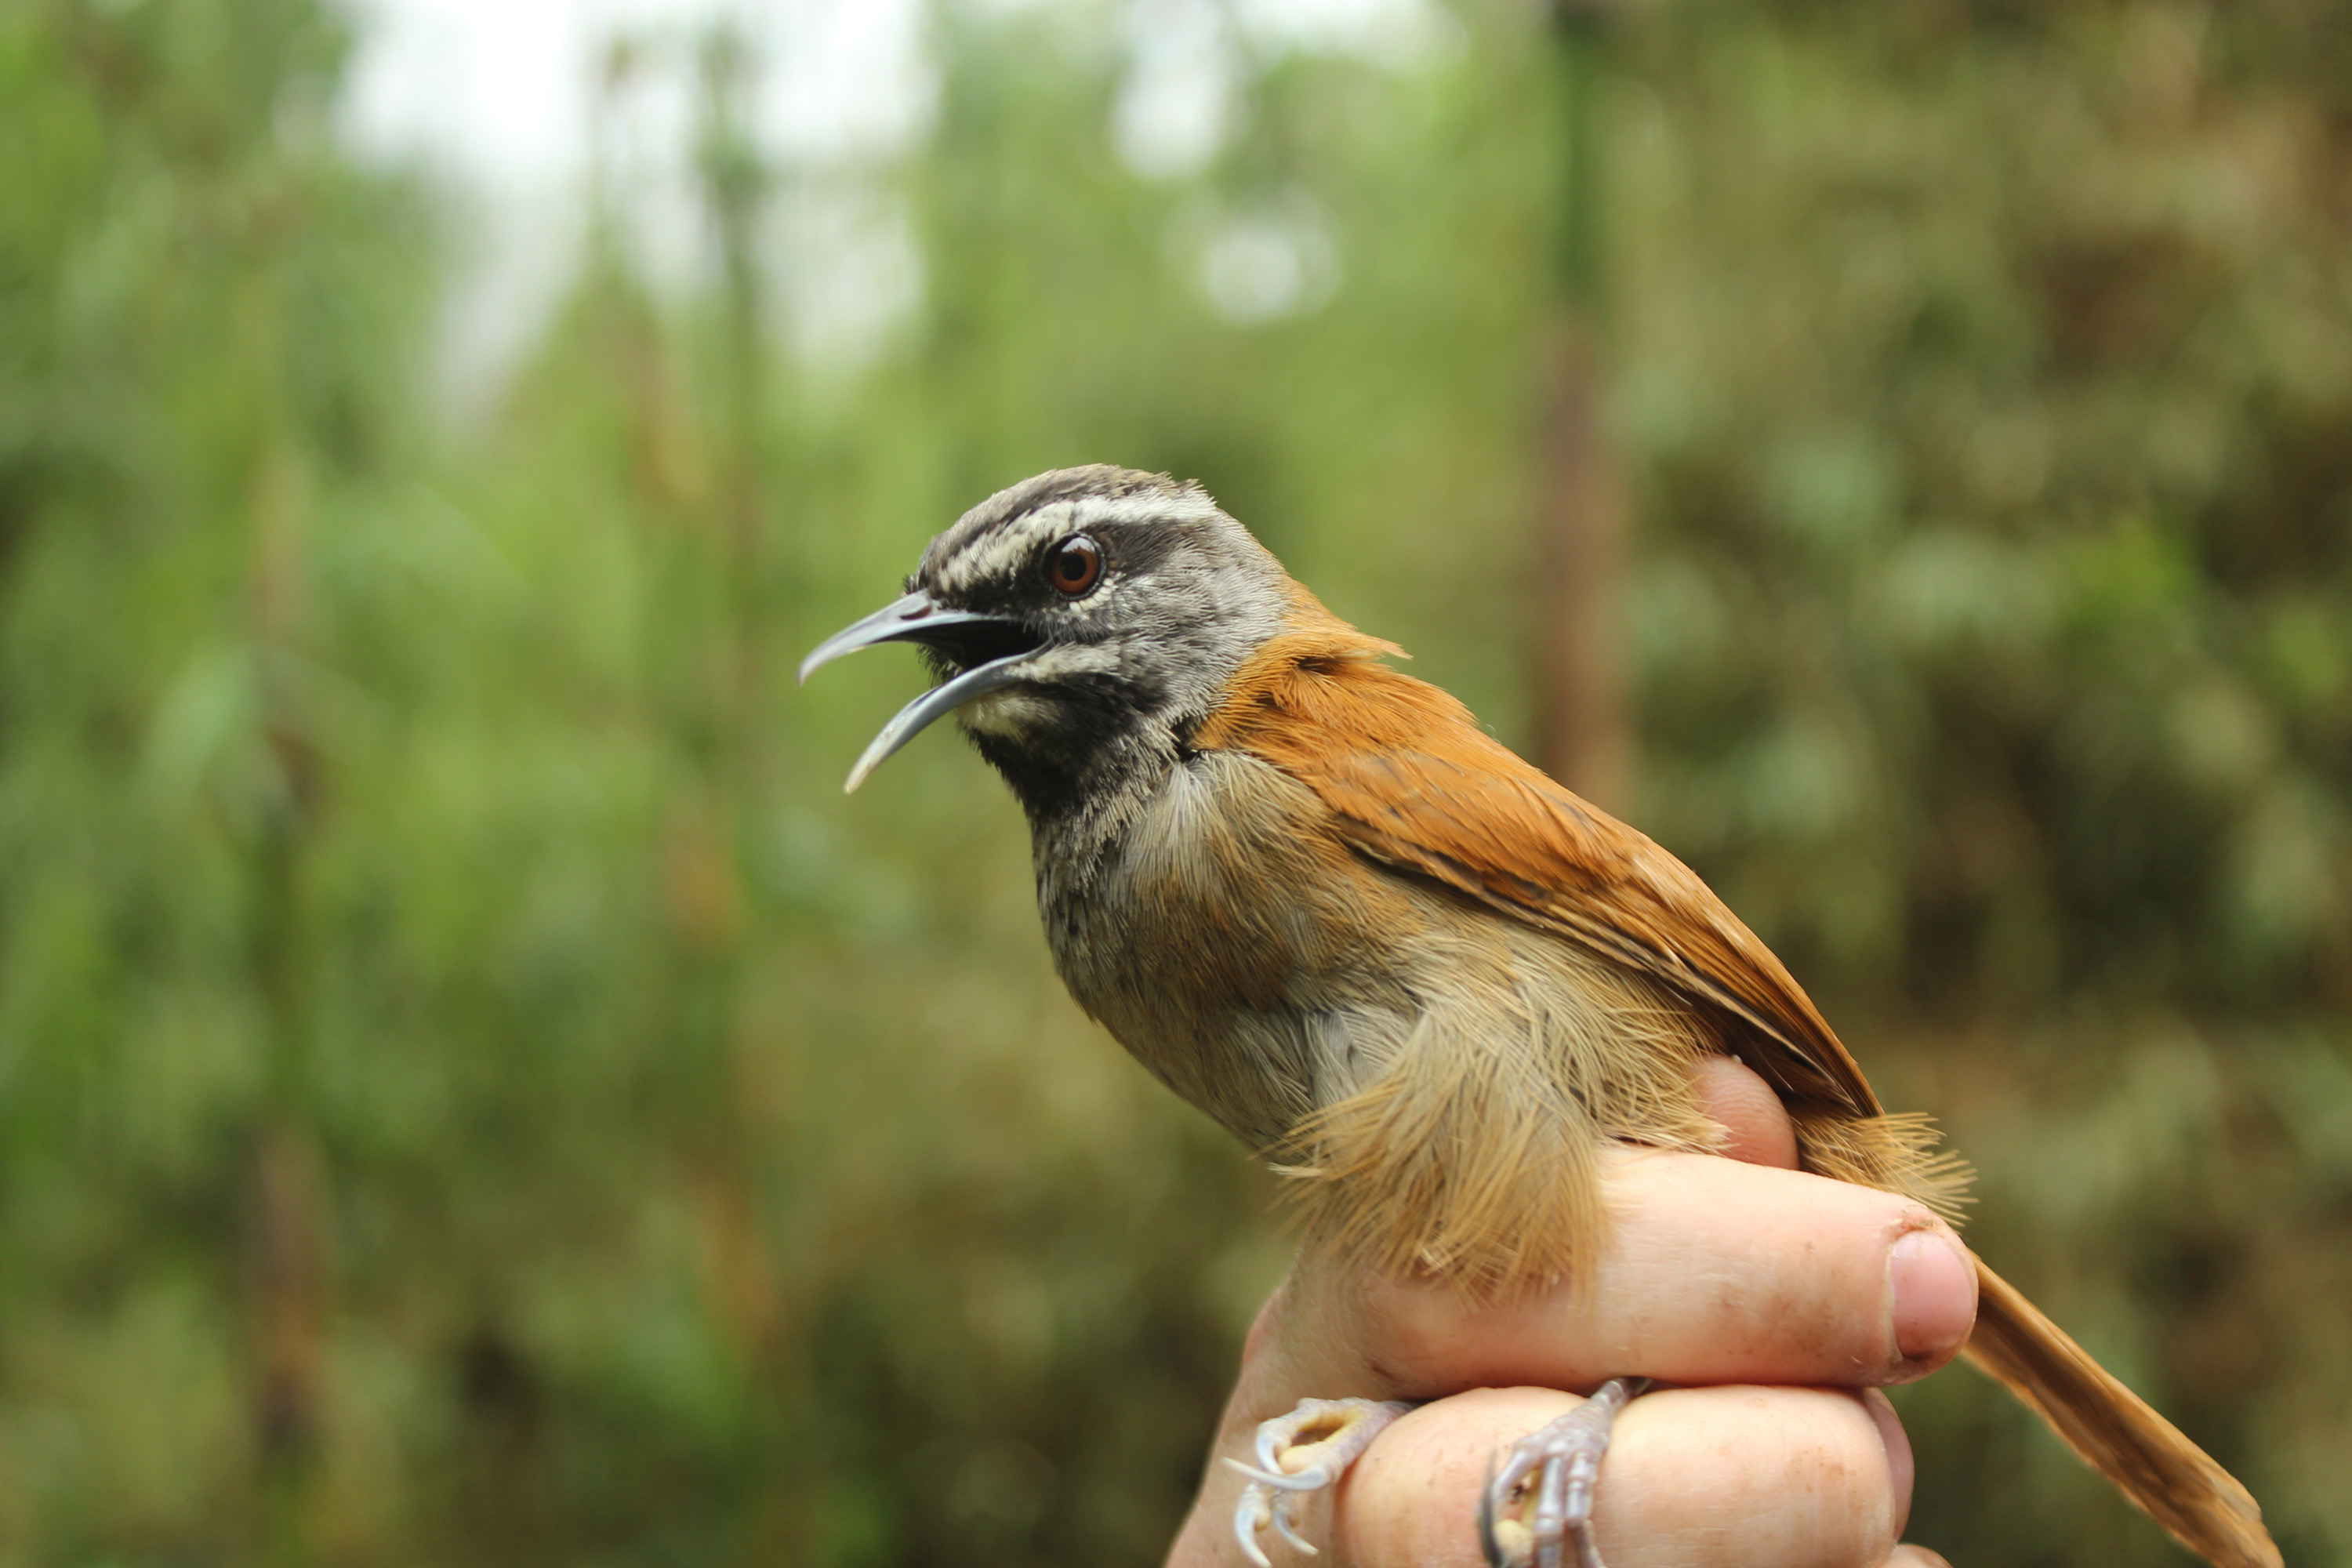 Songbirds act as one when they sing together, new study suggests